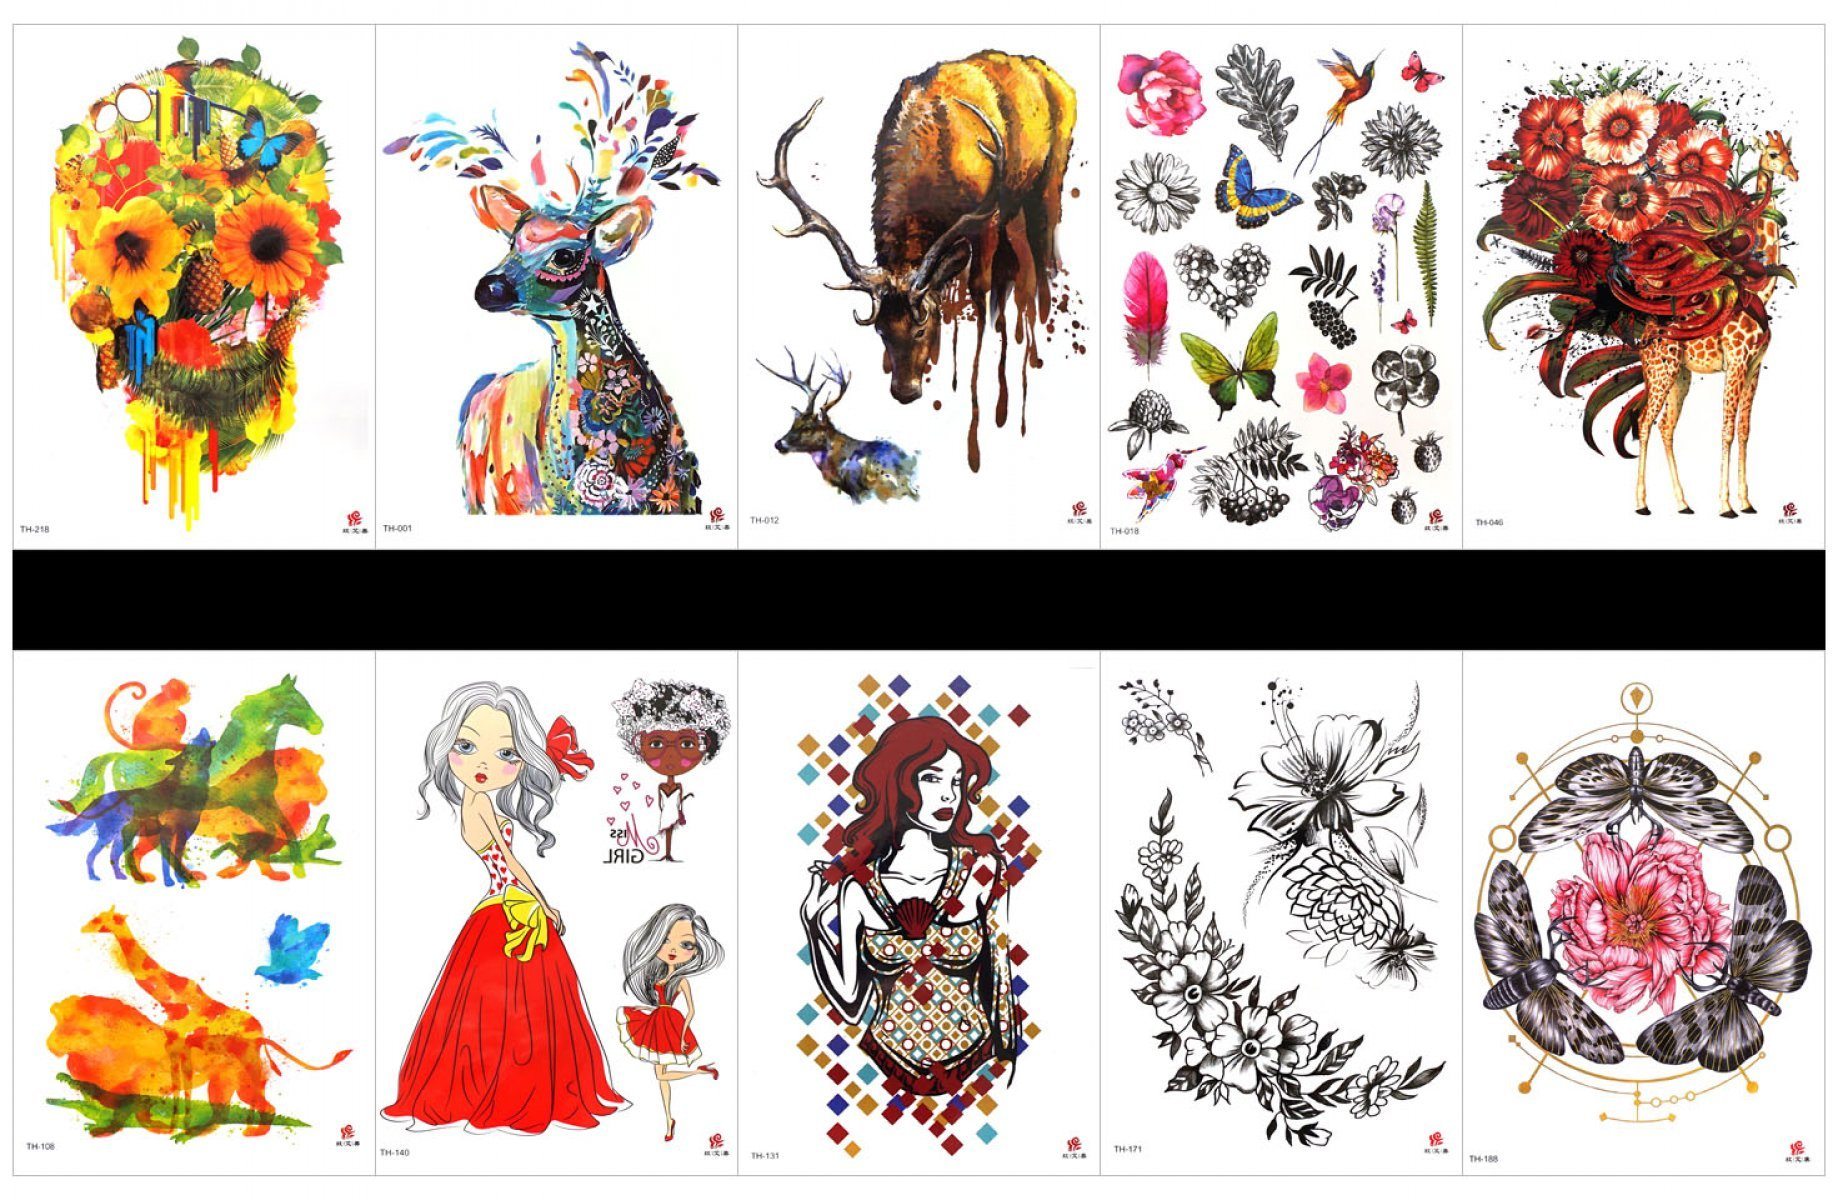 GGSELL GGSELL 10pcs tattoo deer temporary tattoos in one packages,including flowers and butterflies,deer,feather,leaves,giraffe with flowers,horse,monkey,dog,beautiful lady,flower with butterfly,etc.